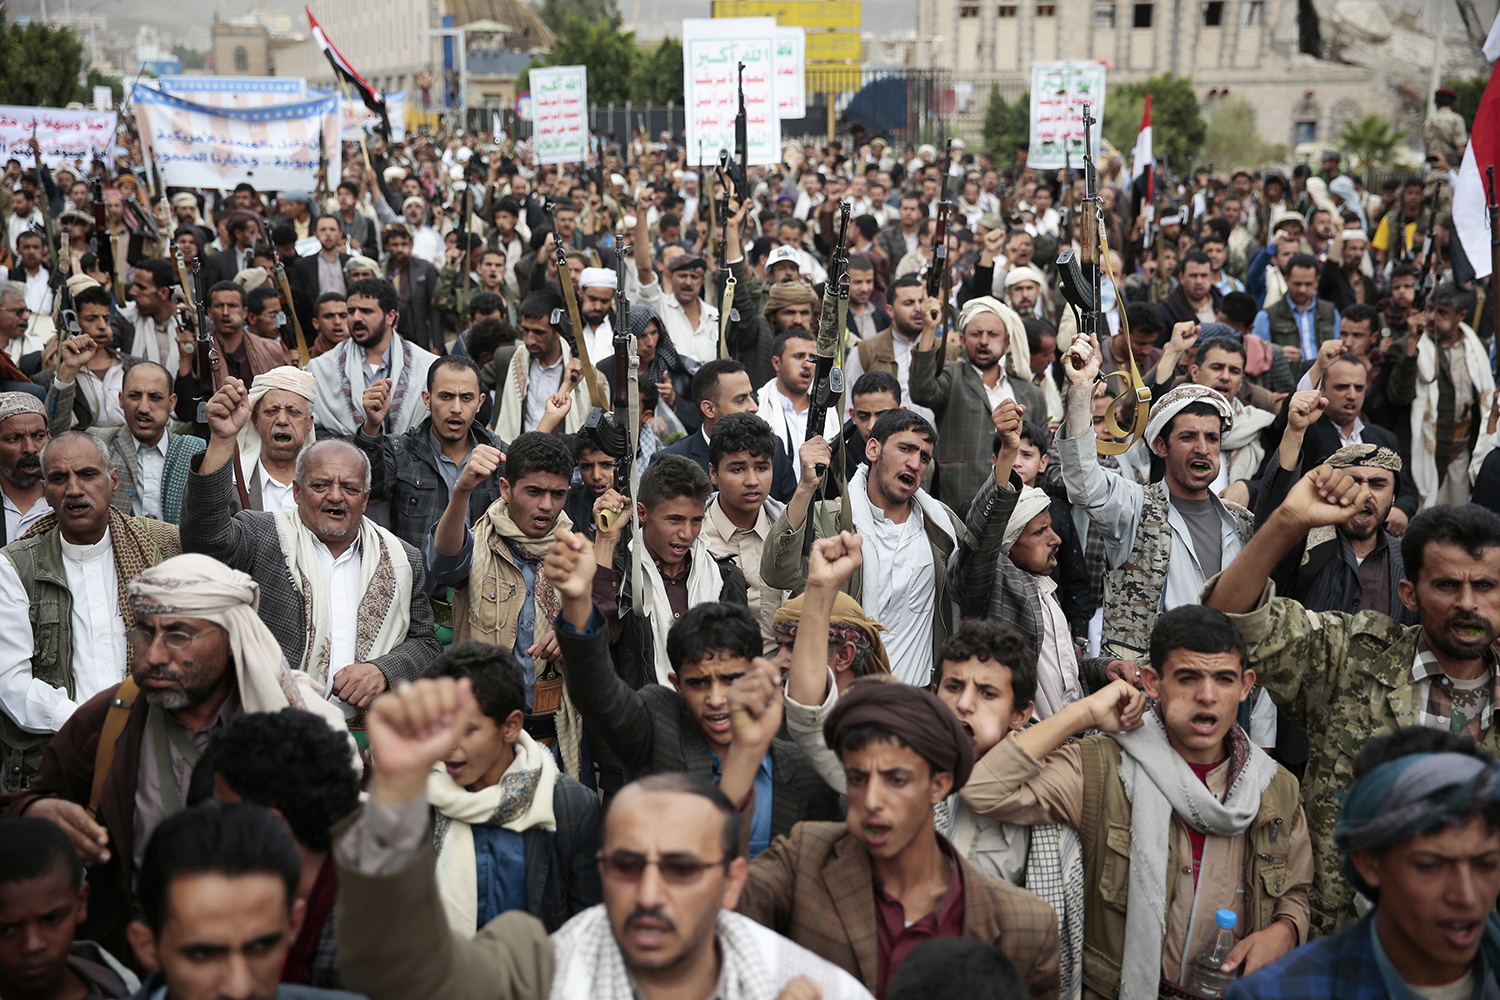 Shiite tribesmen, known as Houthis, hold their weapons as they chant slogans during a rally in support of the Houthi movement in Sanaa, Yemen, Monday, July 18, 2016. (AP Photo/Hani Mohammed)